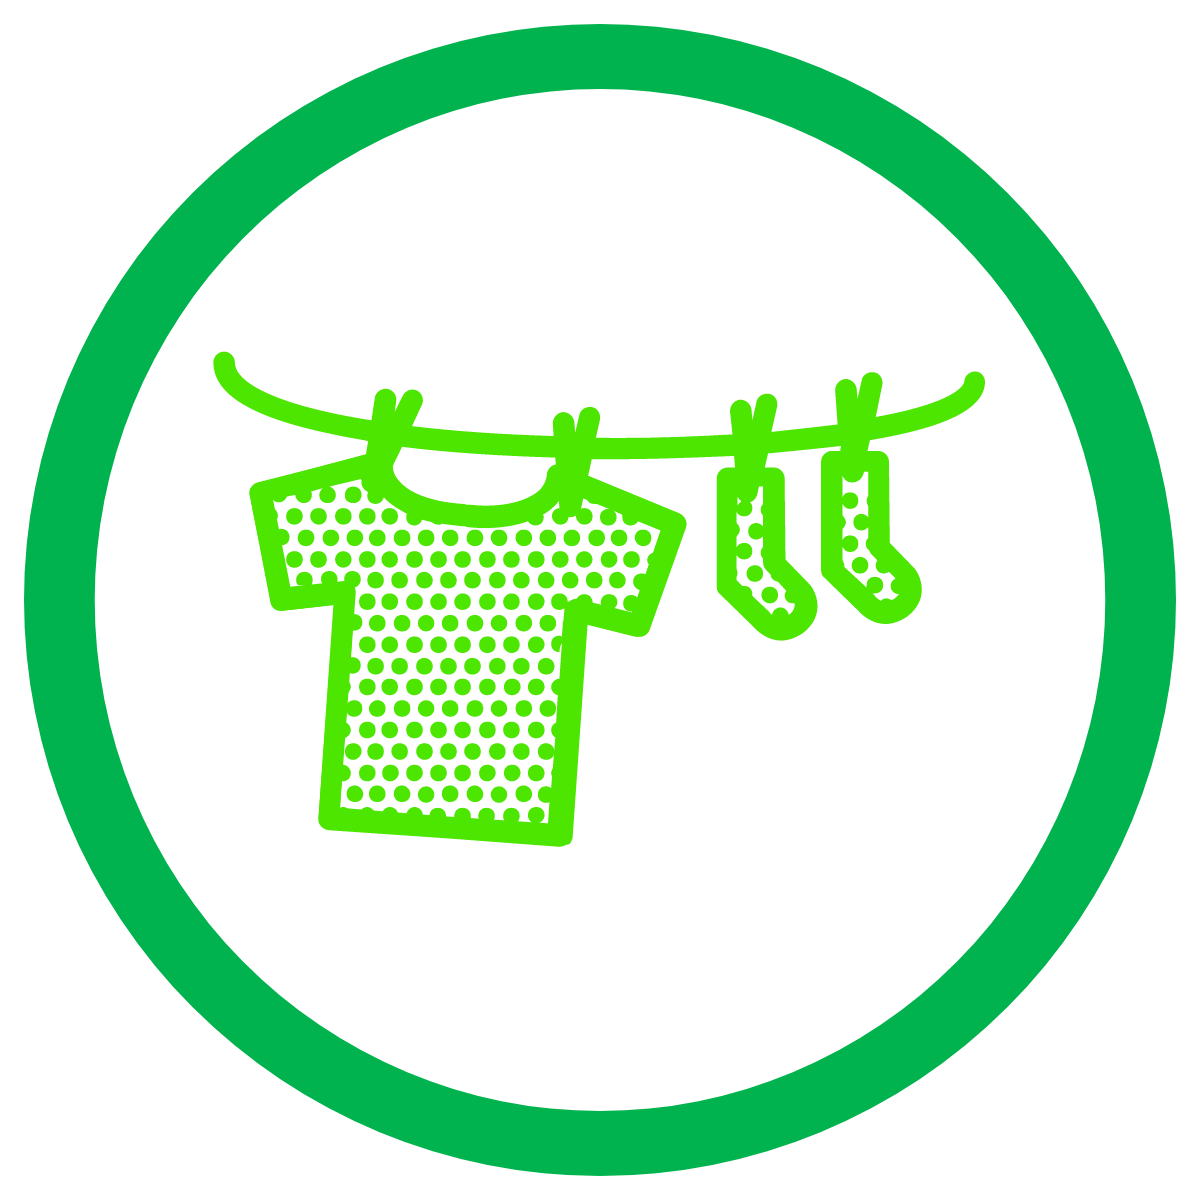 green line drawing of clothing hanging out a laundry line